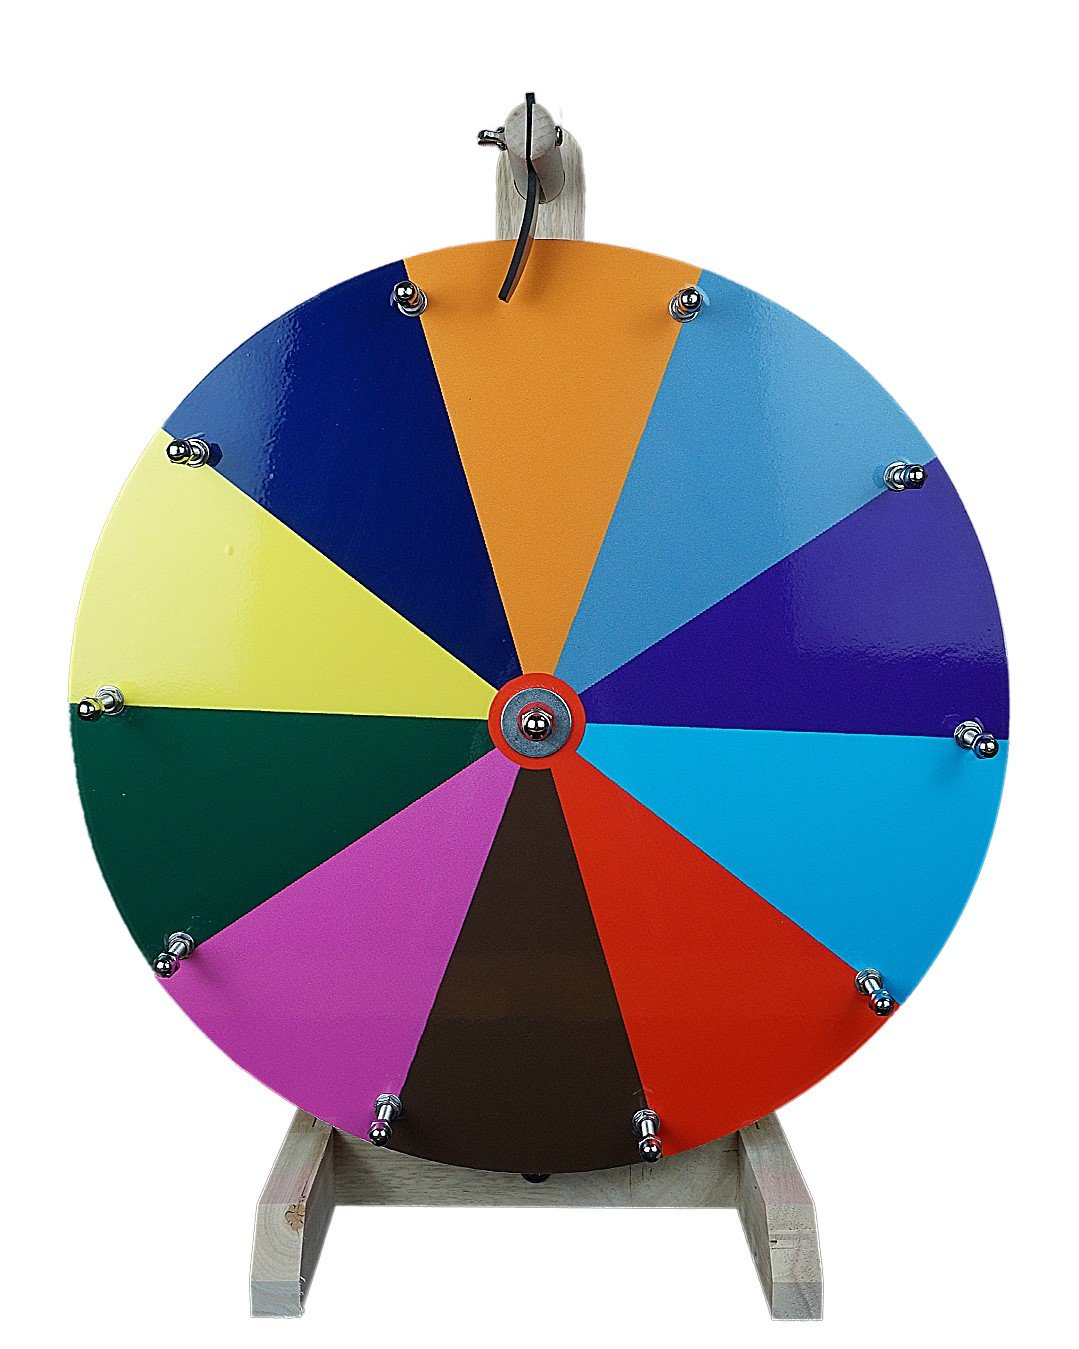 16'' Tabletop Color Dry Erase Prize Wheel, Spinning Board w/ 10 Slots and Wood Stand